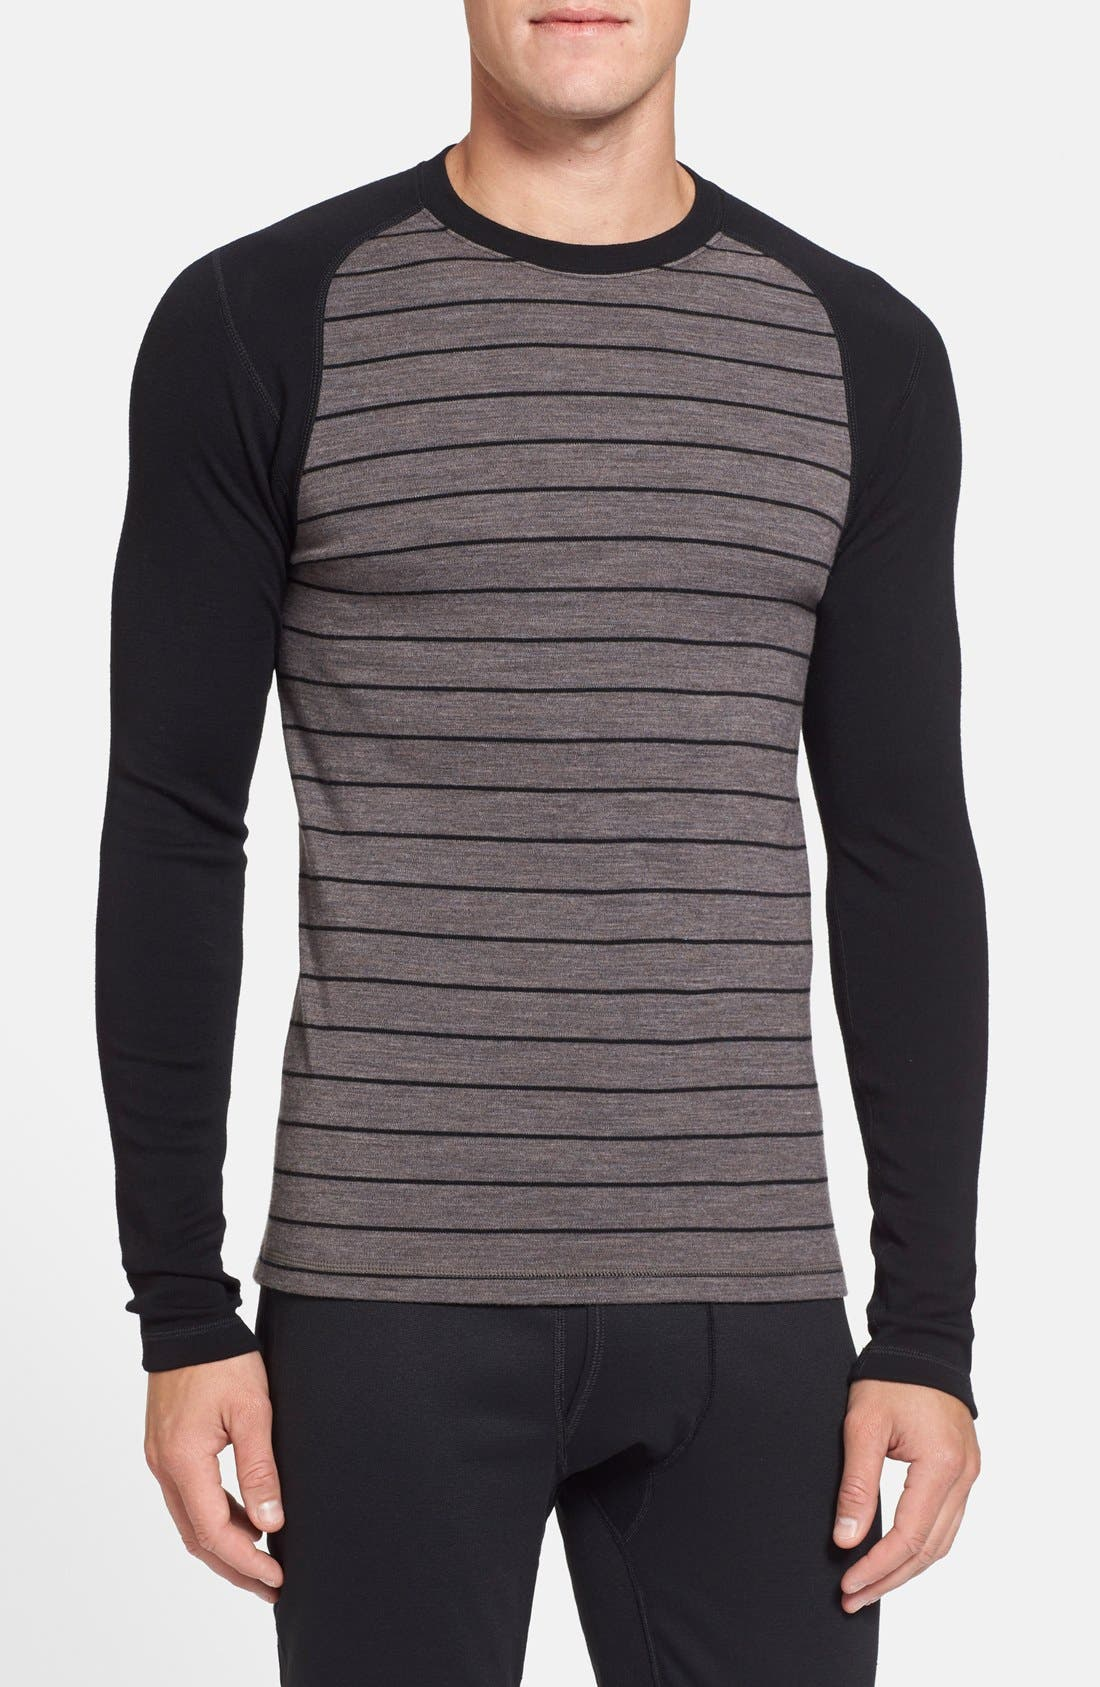 Alternate Image 1 Selected - Smartwool 250g Base Layer Midweight Crewneck Shirt